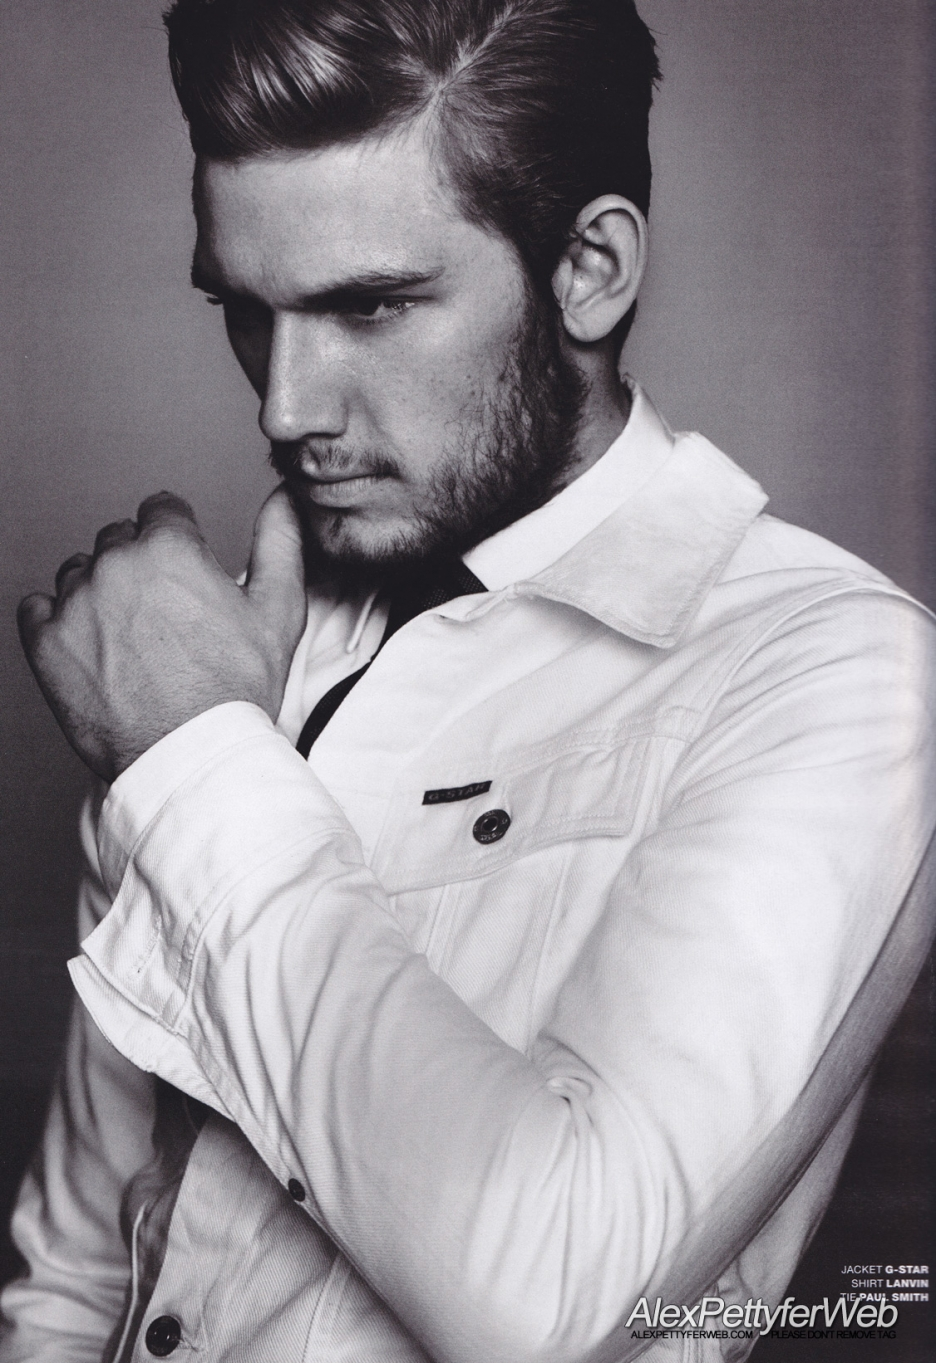 Alex Pettyfer The Super Model Hot And Sensational